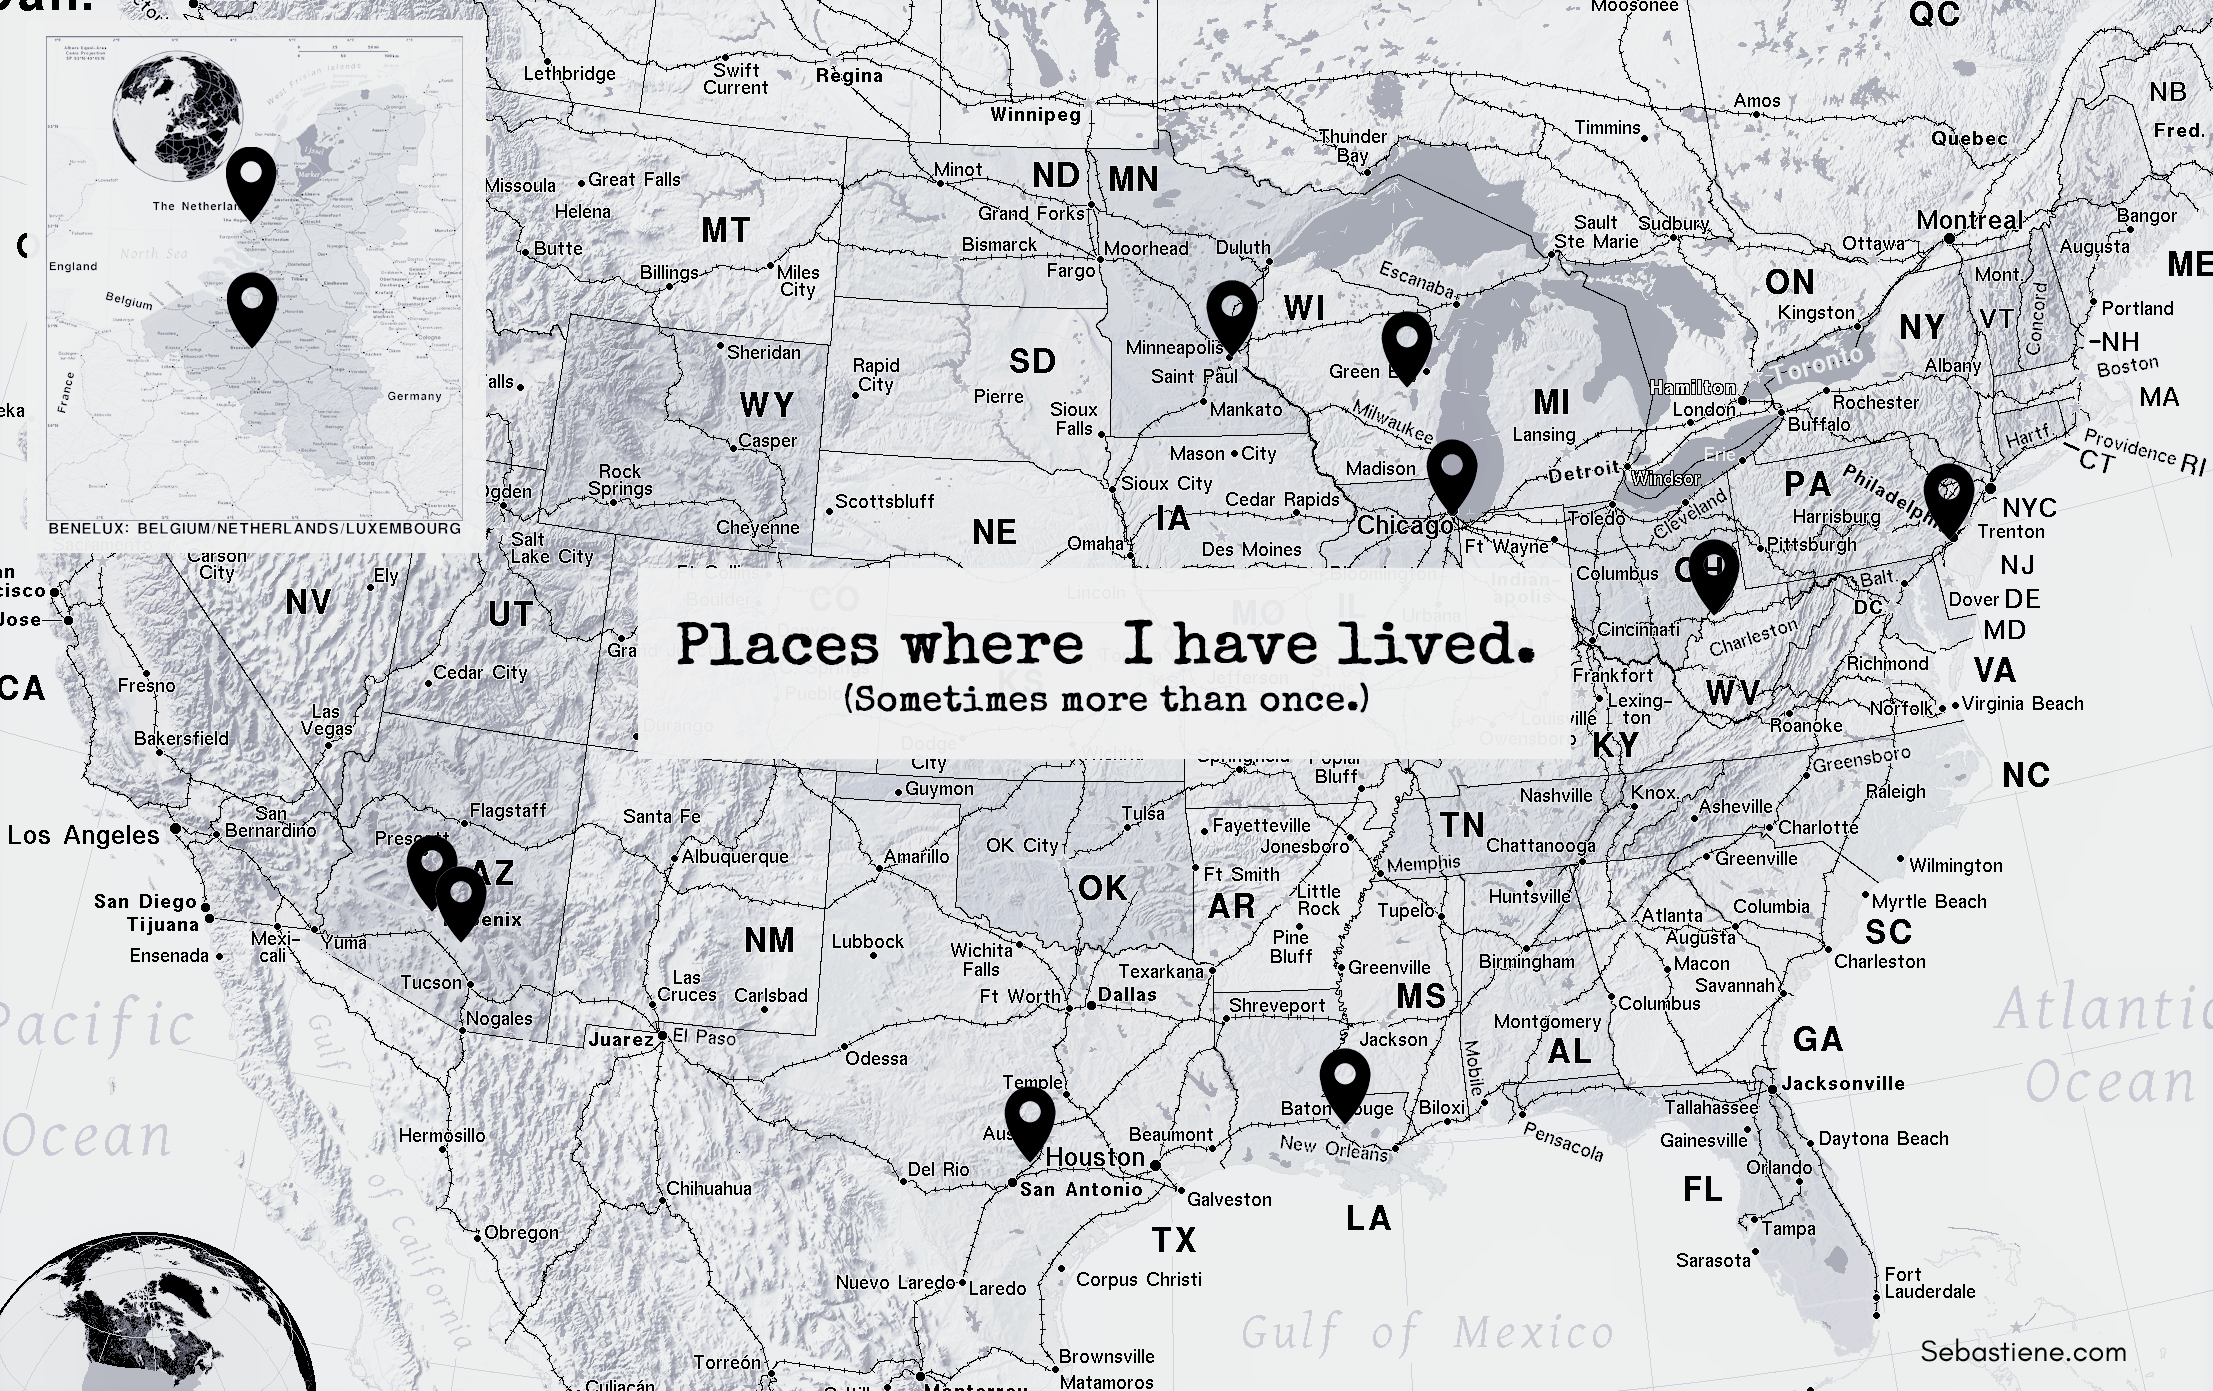 Places-I-Have-Lived-Map-20180201-1-2-7.png